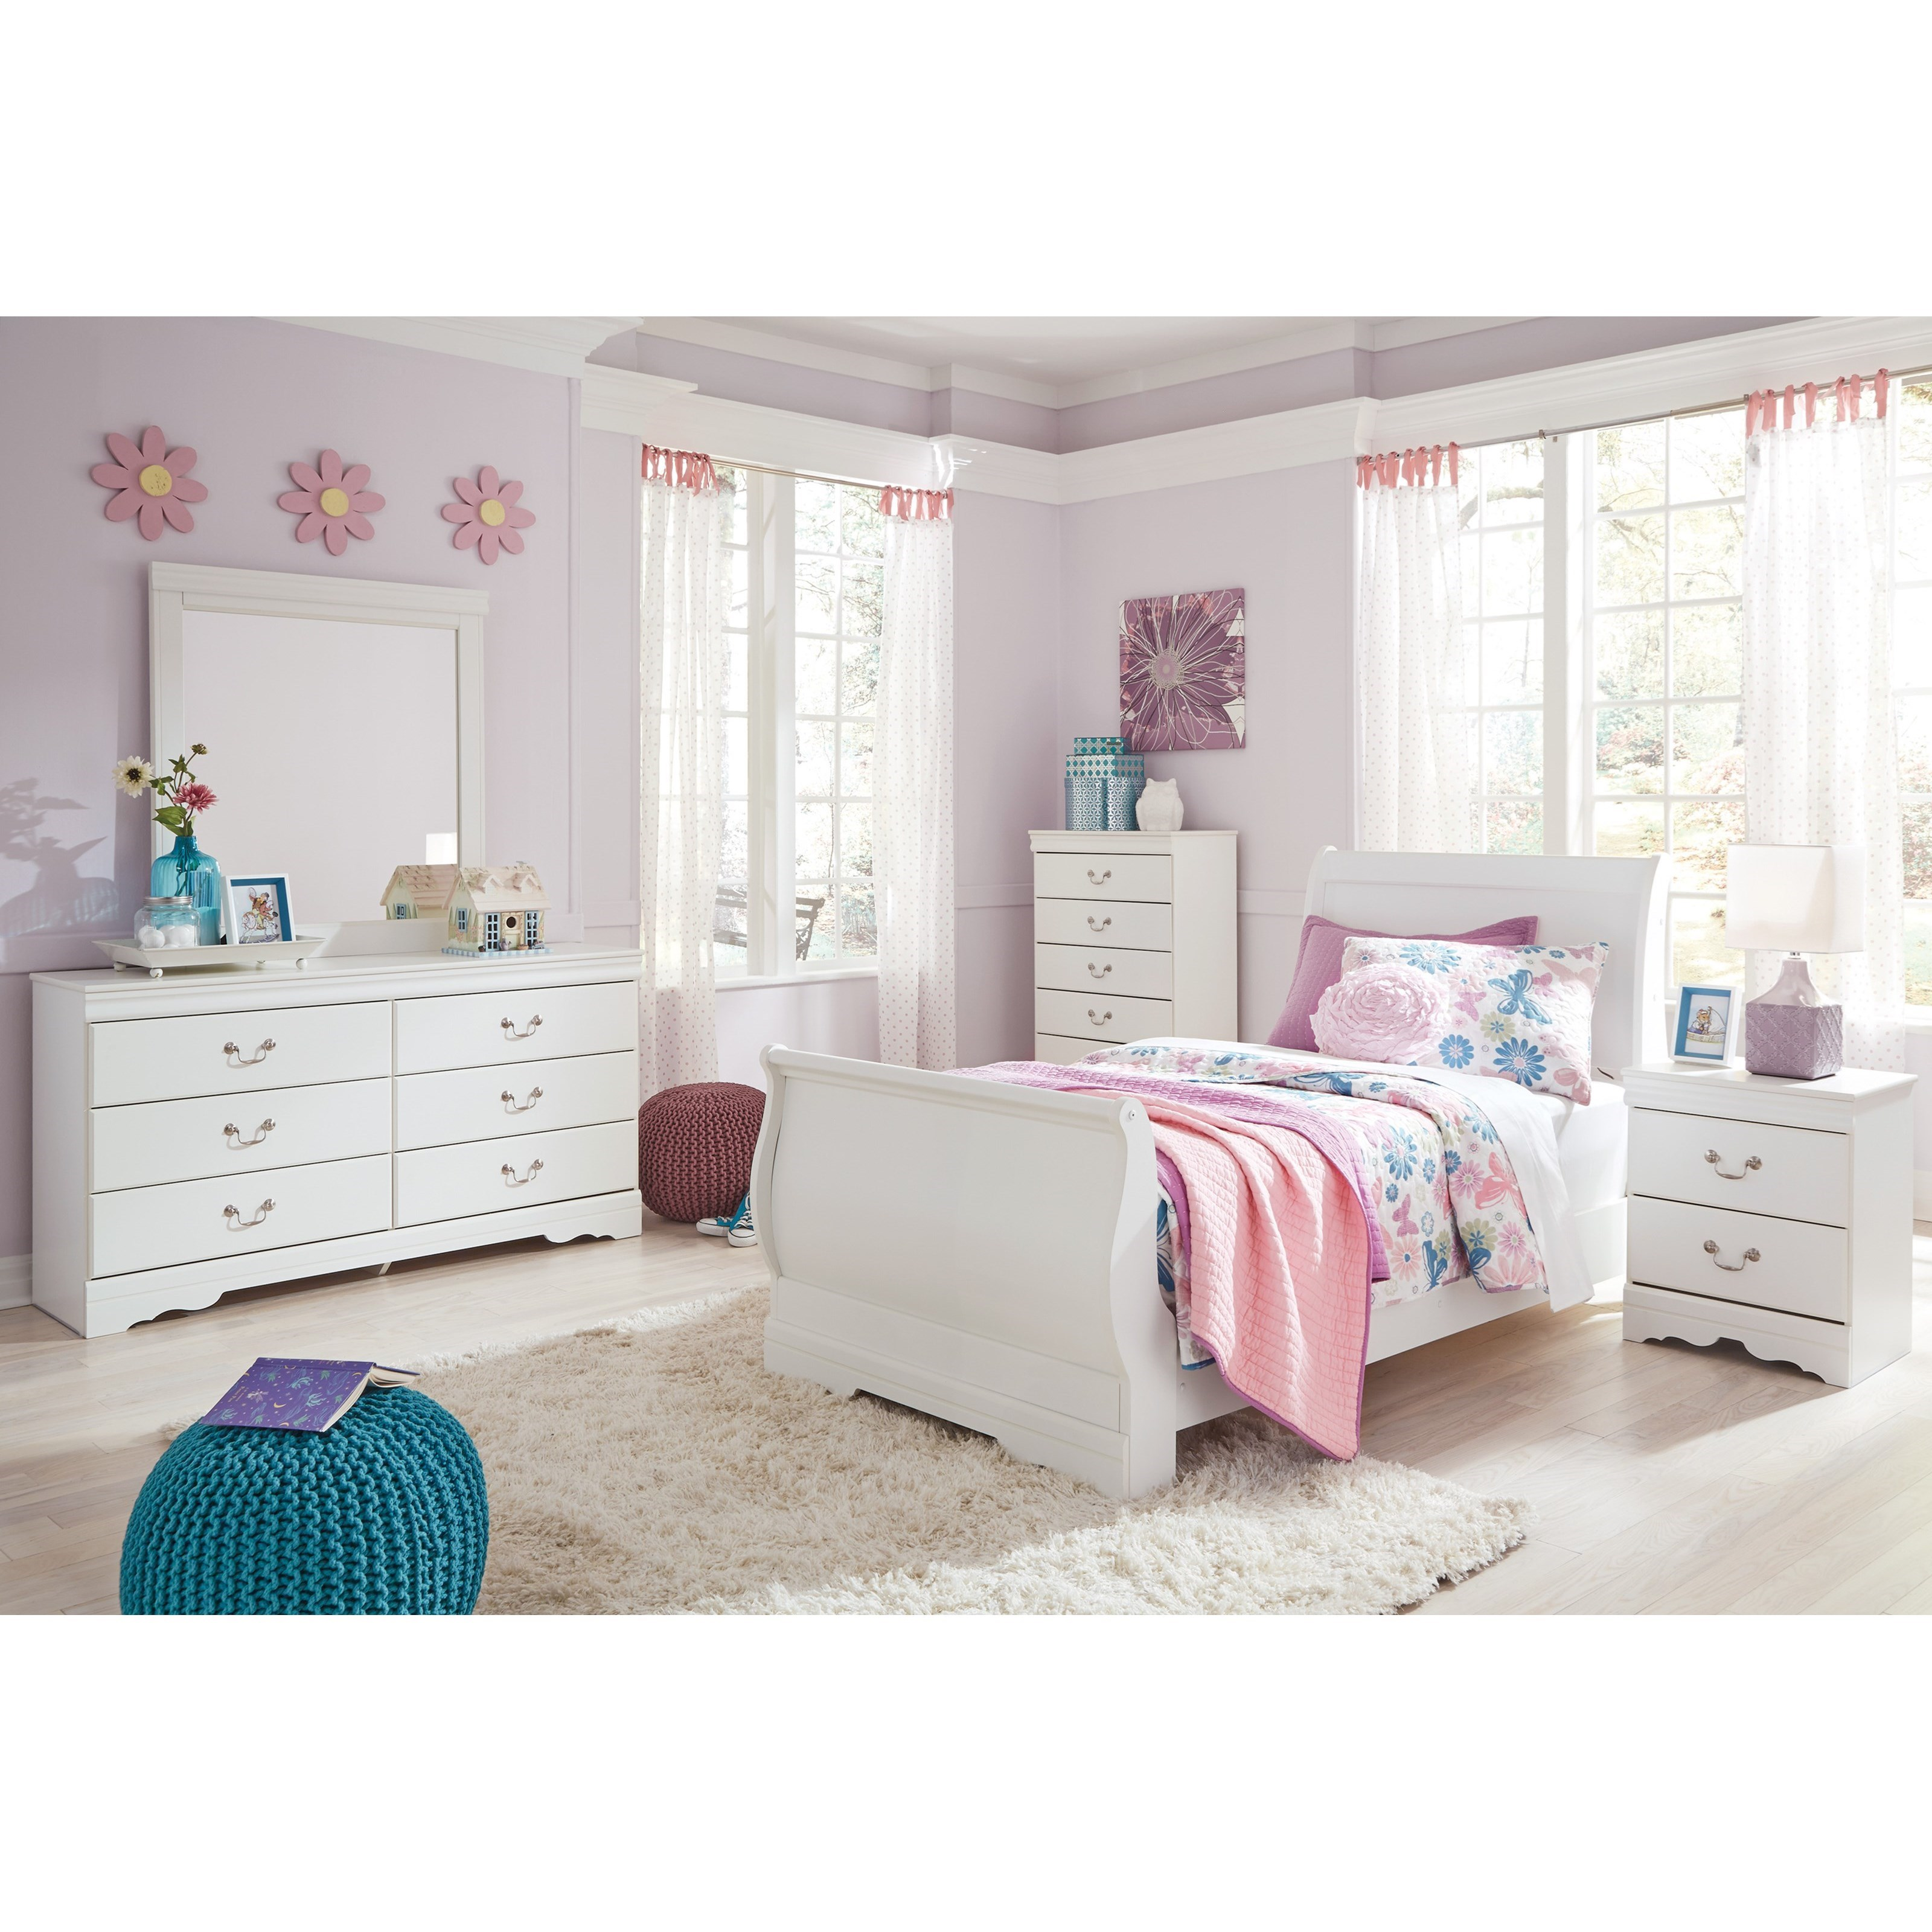 Anarasia Twin Bedroom Group by Signature Design by Ashley at Standard Furniture